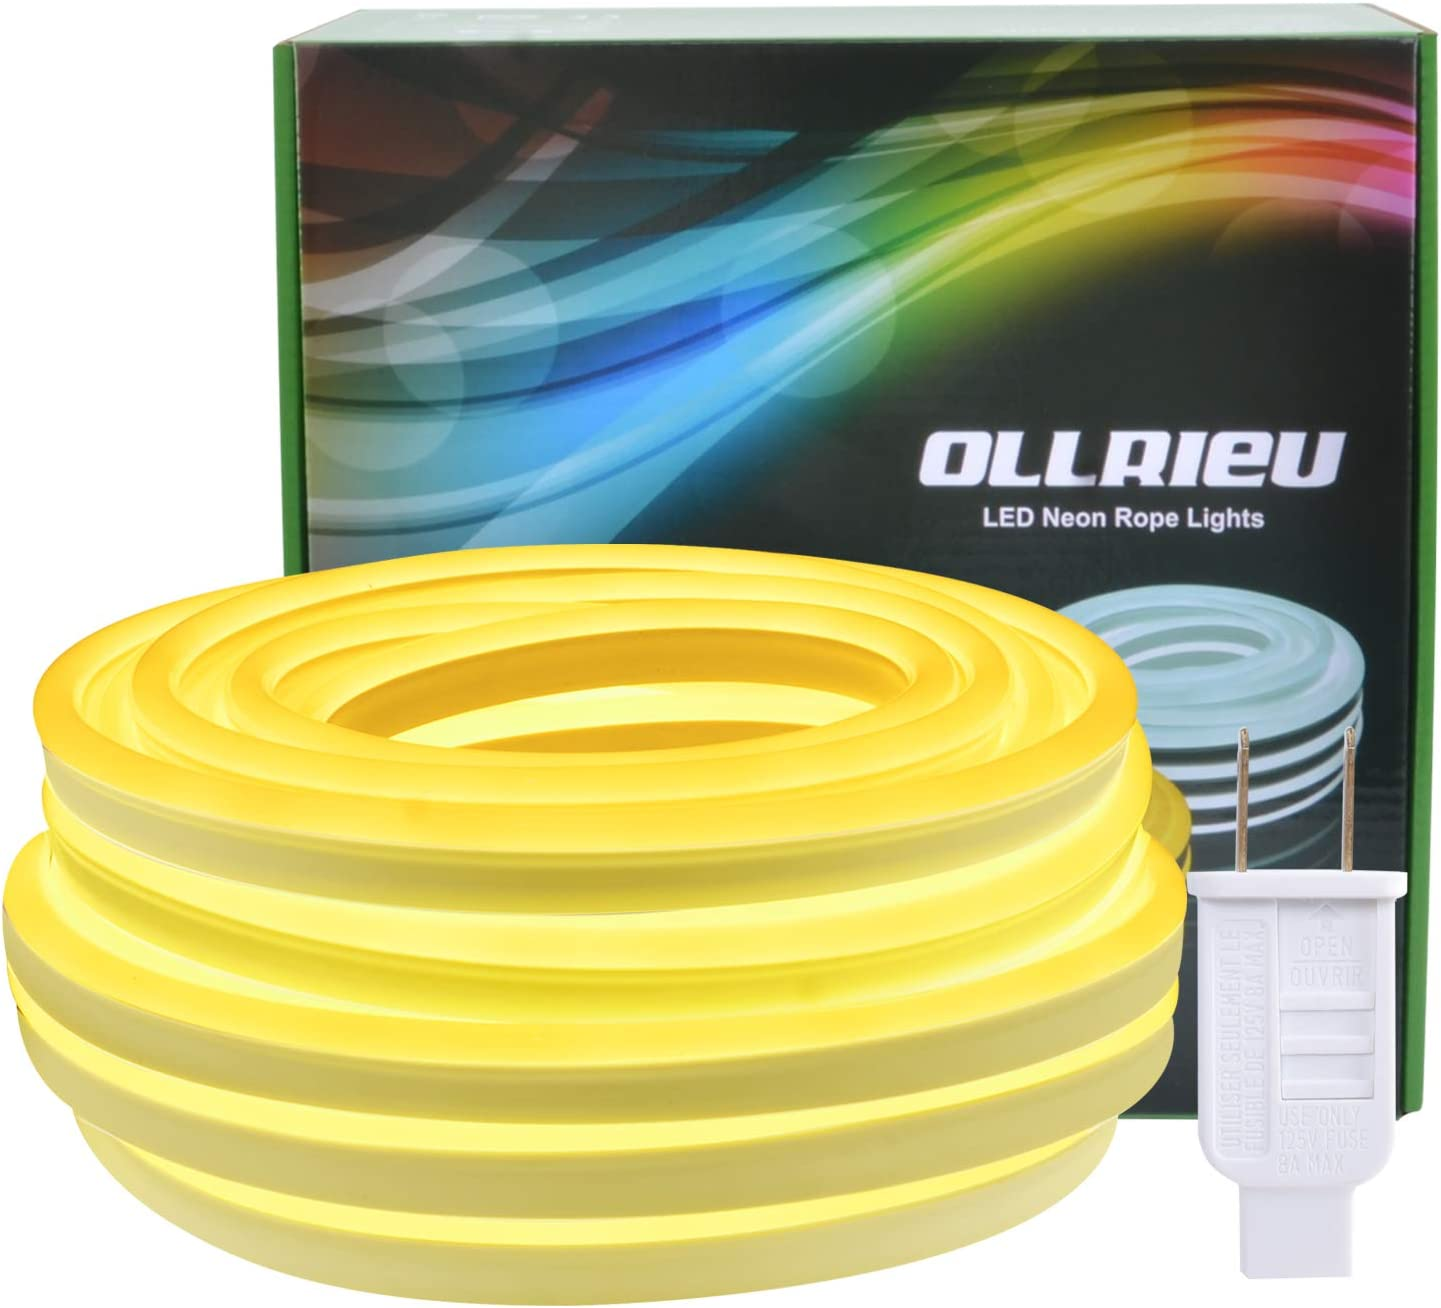 50ft Neon Rope Lights Outdoor LED Direct stock discount Strip High quality new Waterproof Lighting Indo